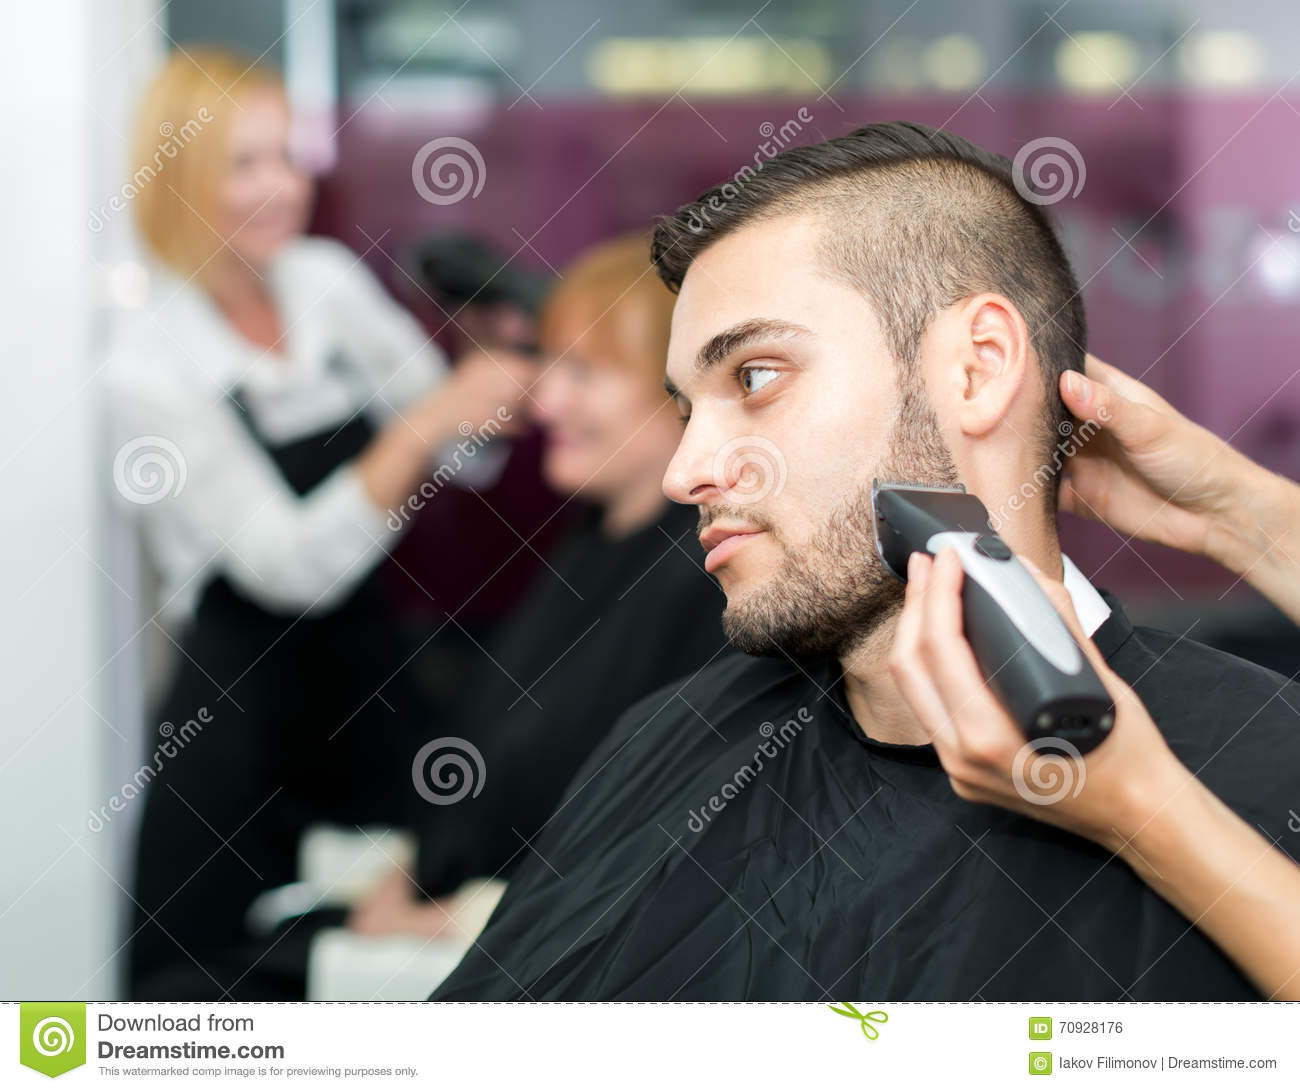 Barber Beard Trim : ... barbershop waiting for barber to trim his beard with electric shaver